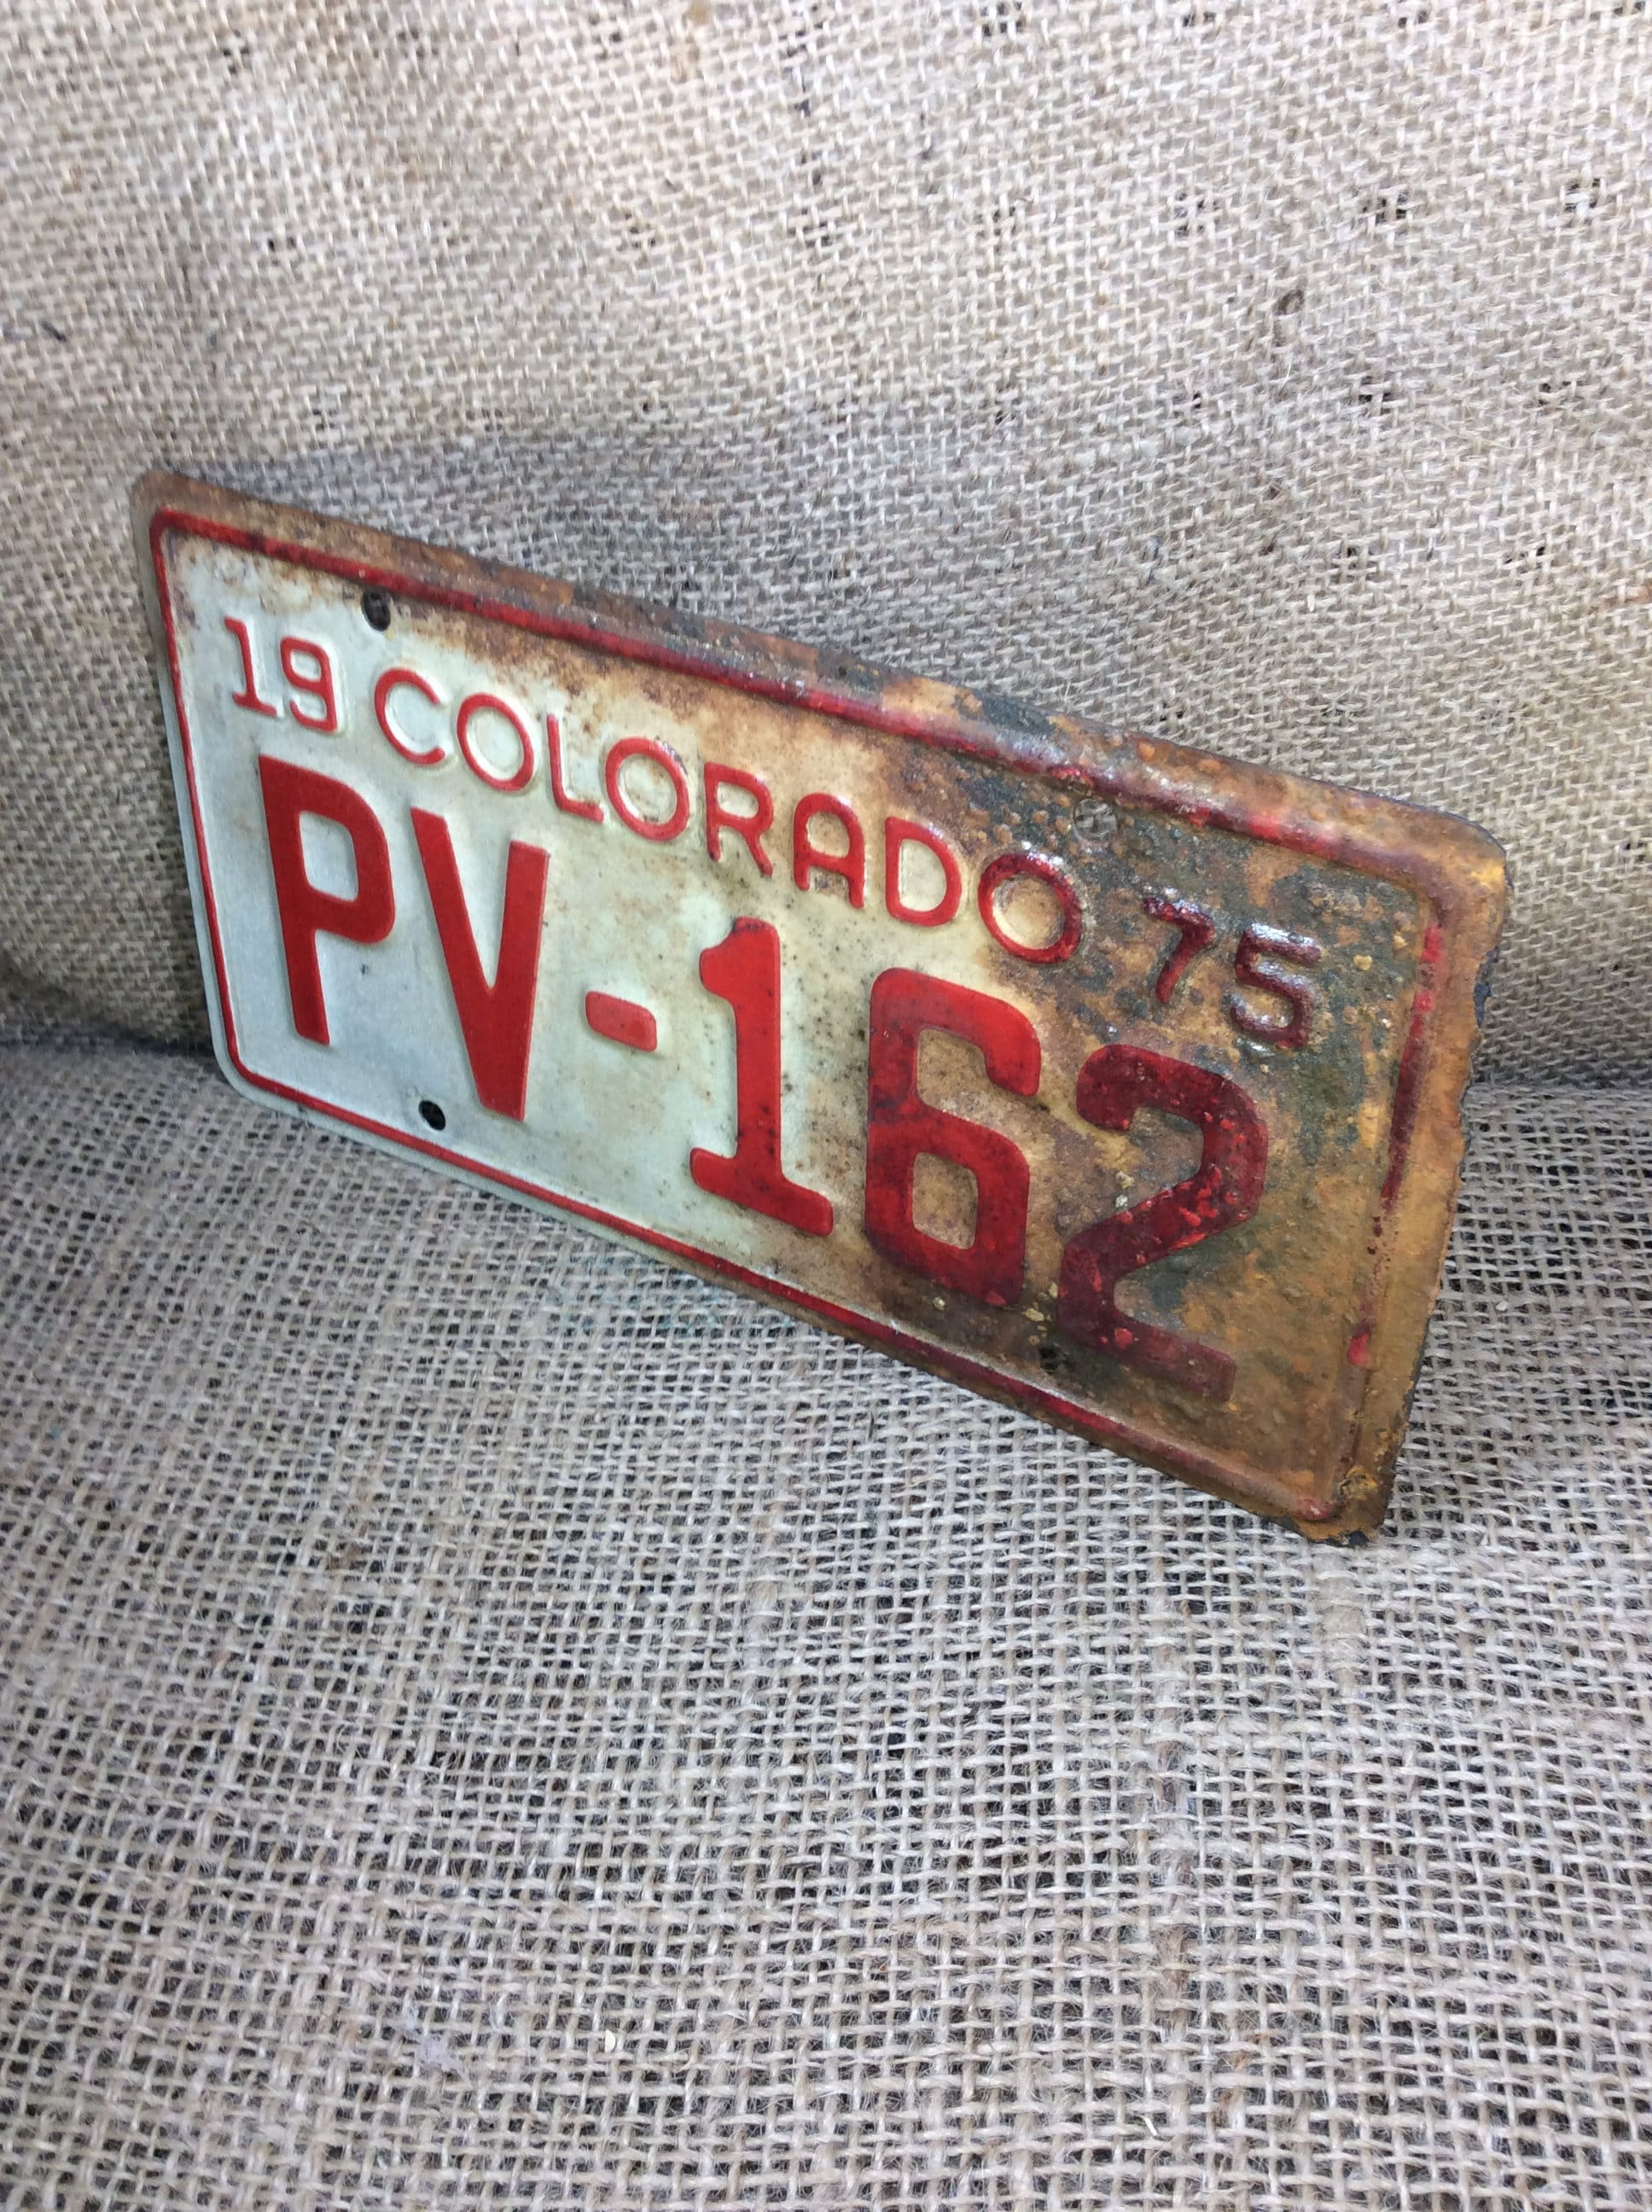 Vintage Colorado motorcycle plate, 1975 red and white Colorado ...